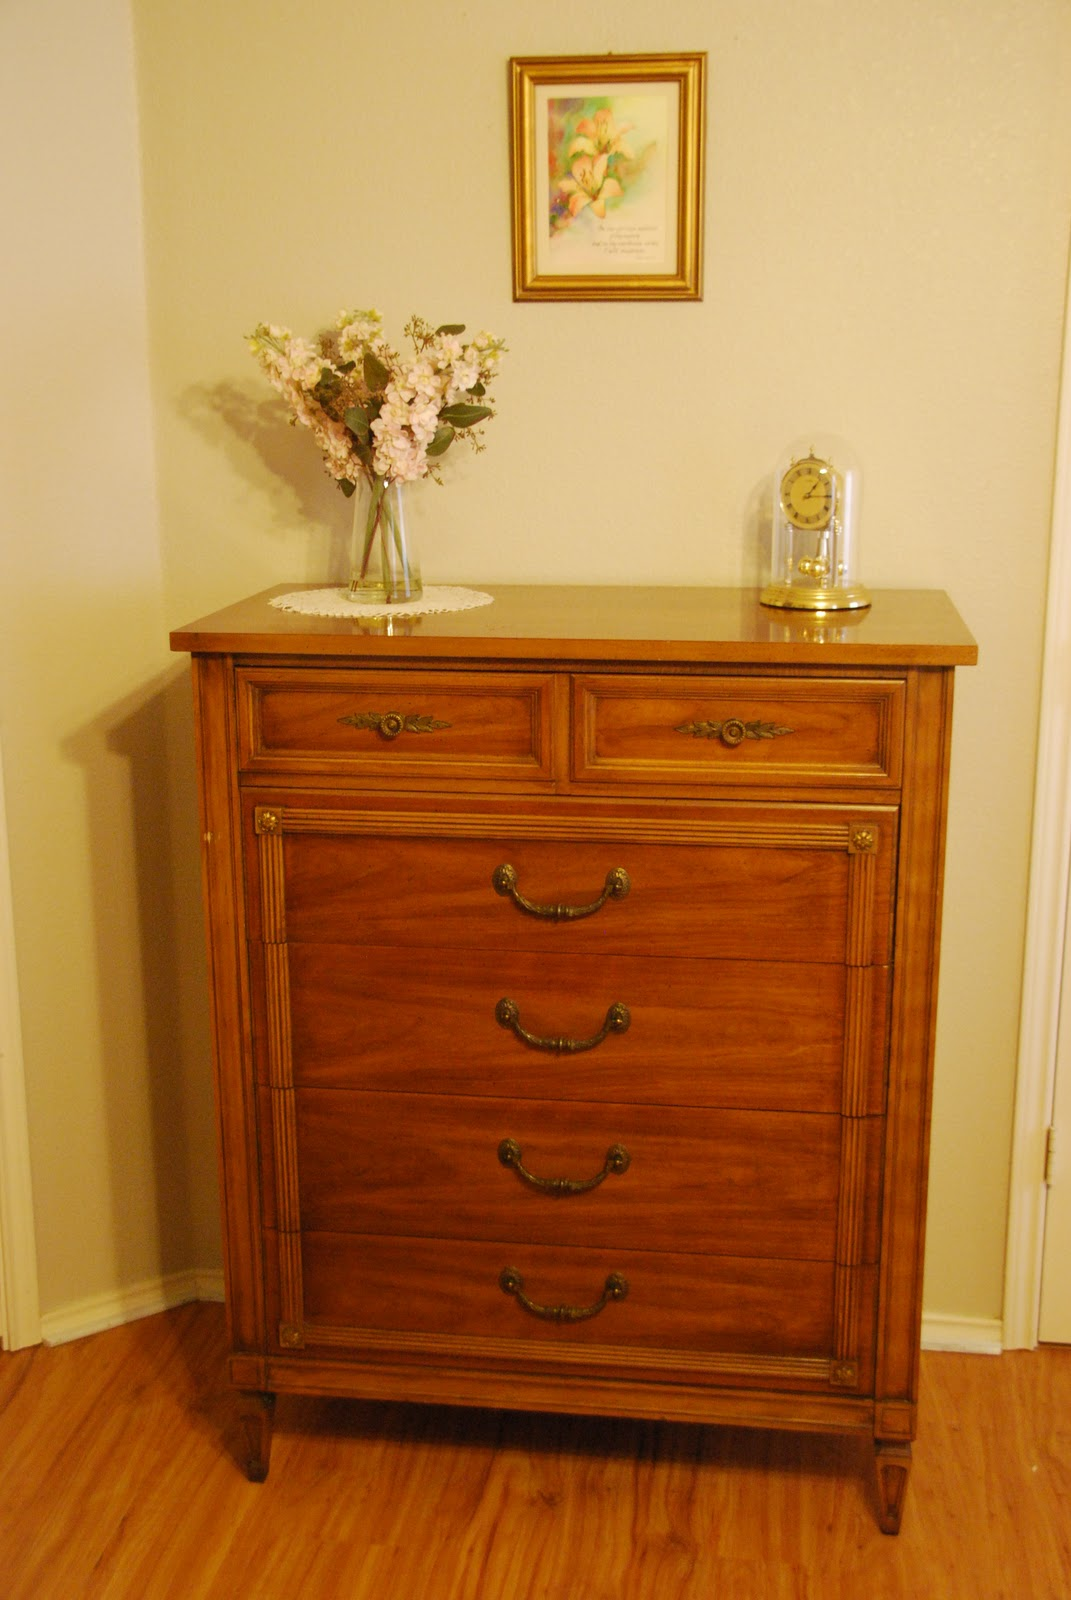 Furniture for sale 1967 vintage thomasville bedroom furniture - Thomasville bedroom furniture ...